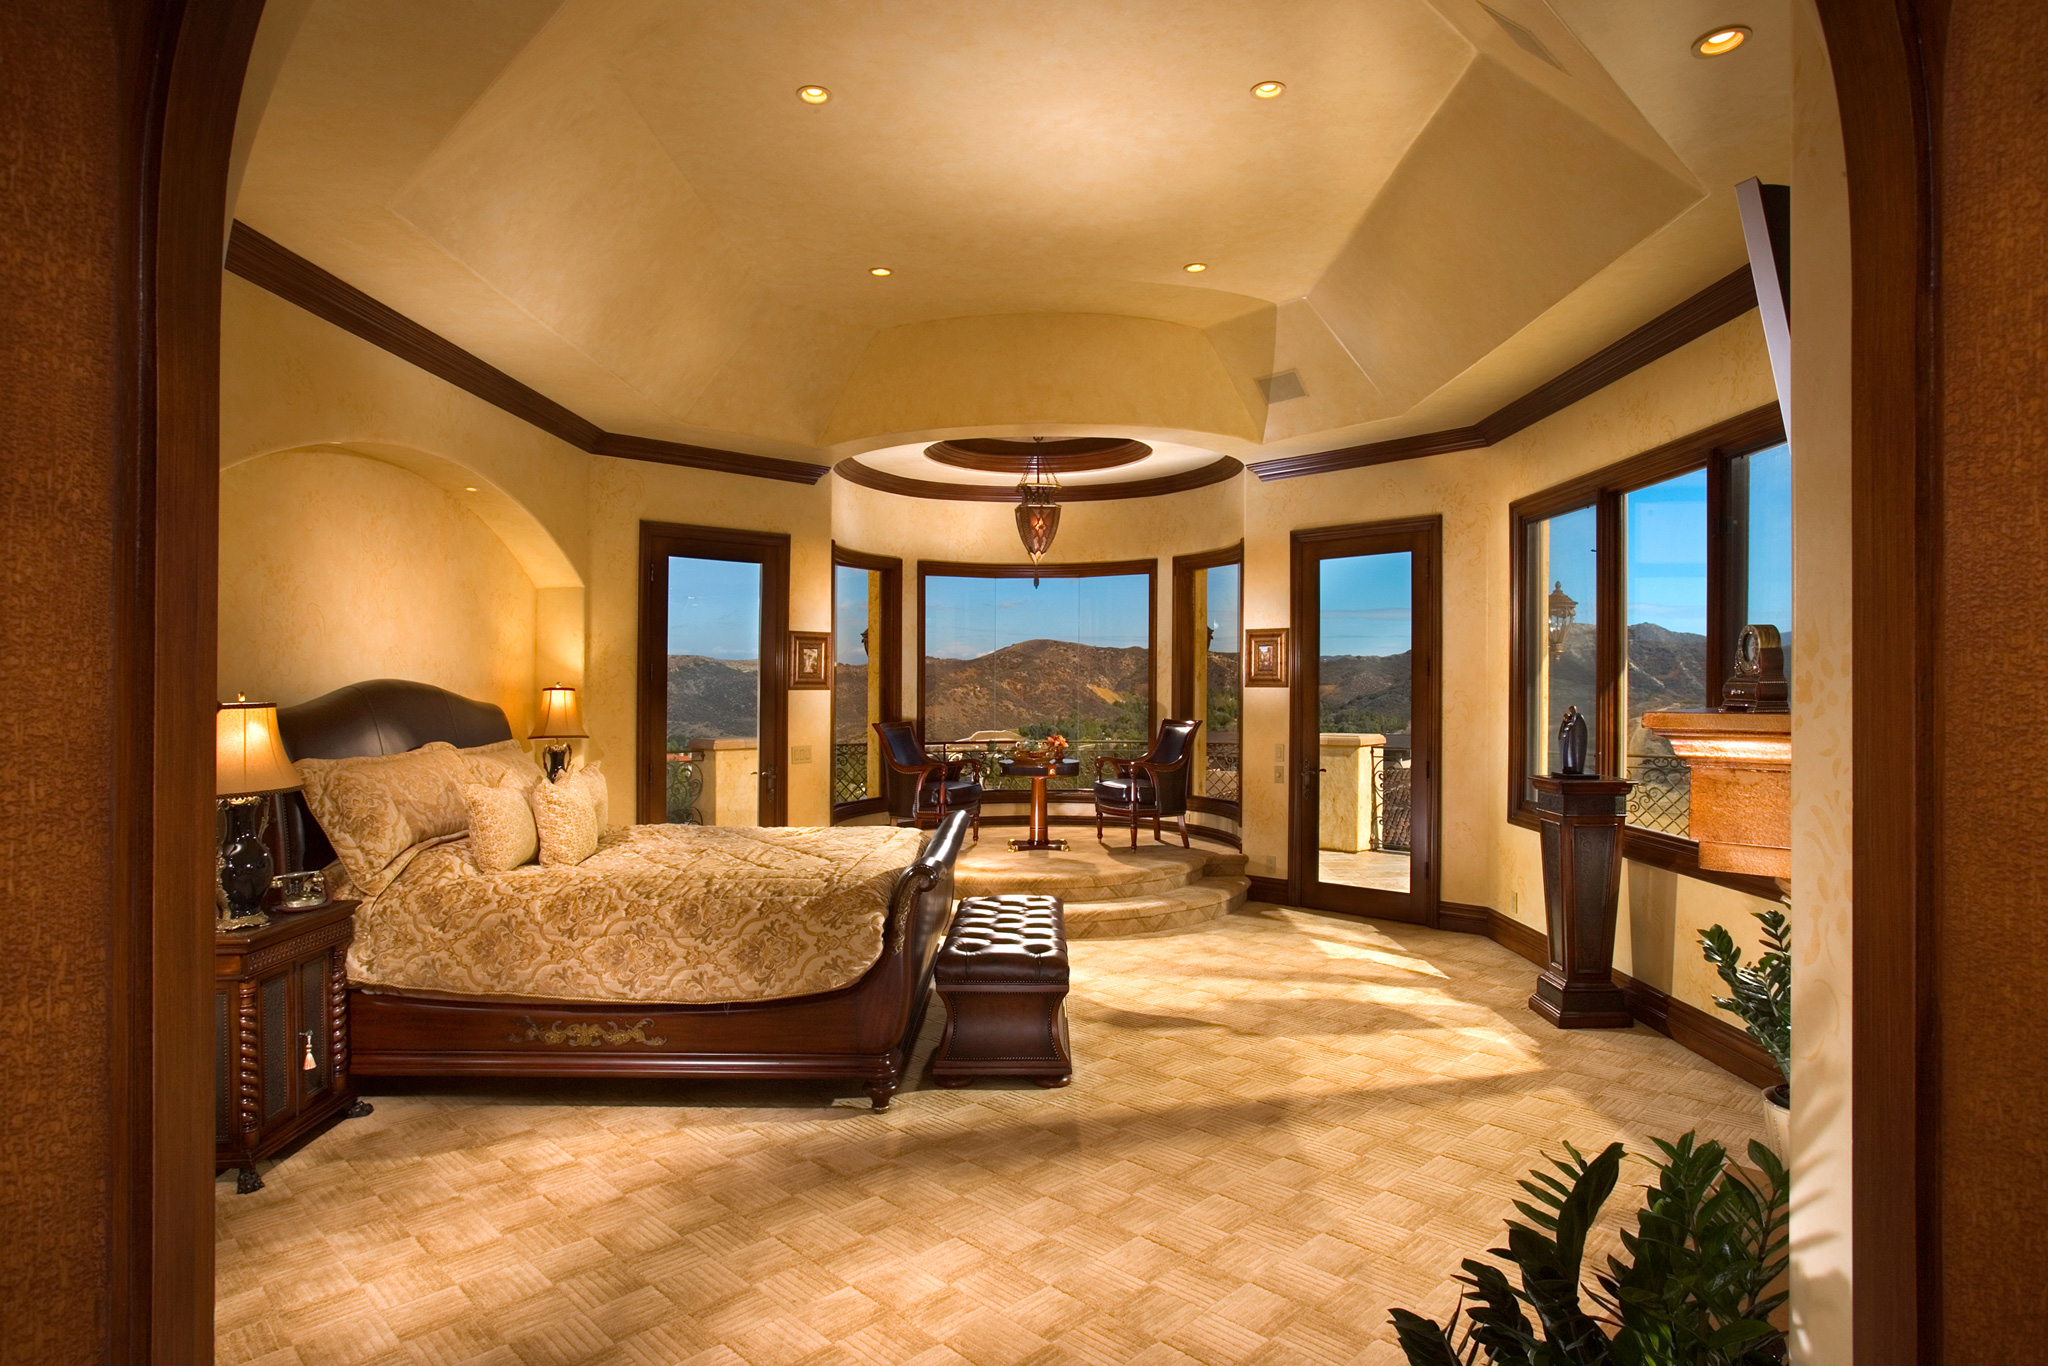 Master bedroom the interior designs for Front room decorating designs